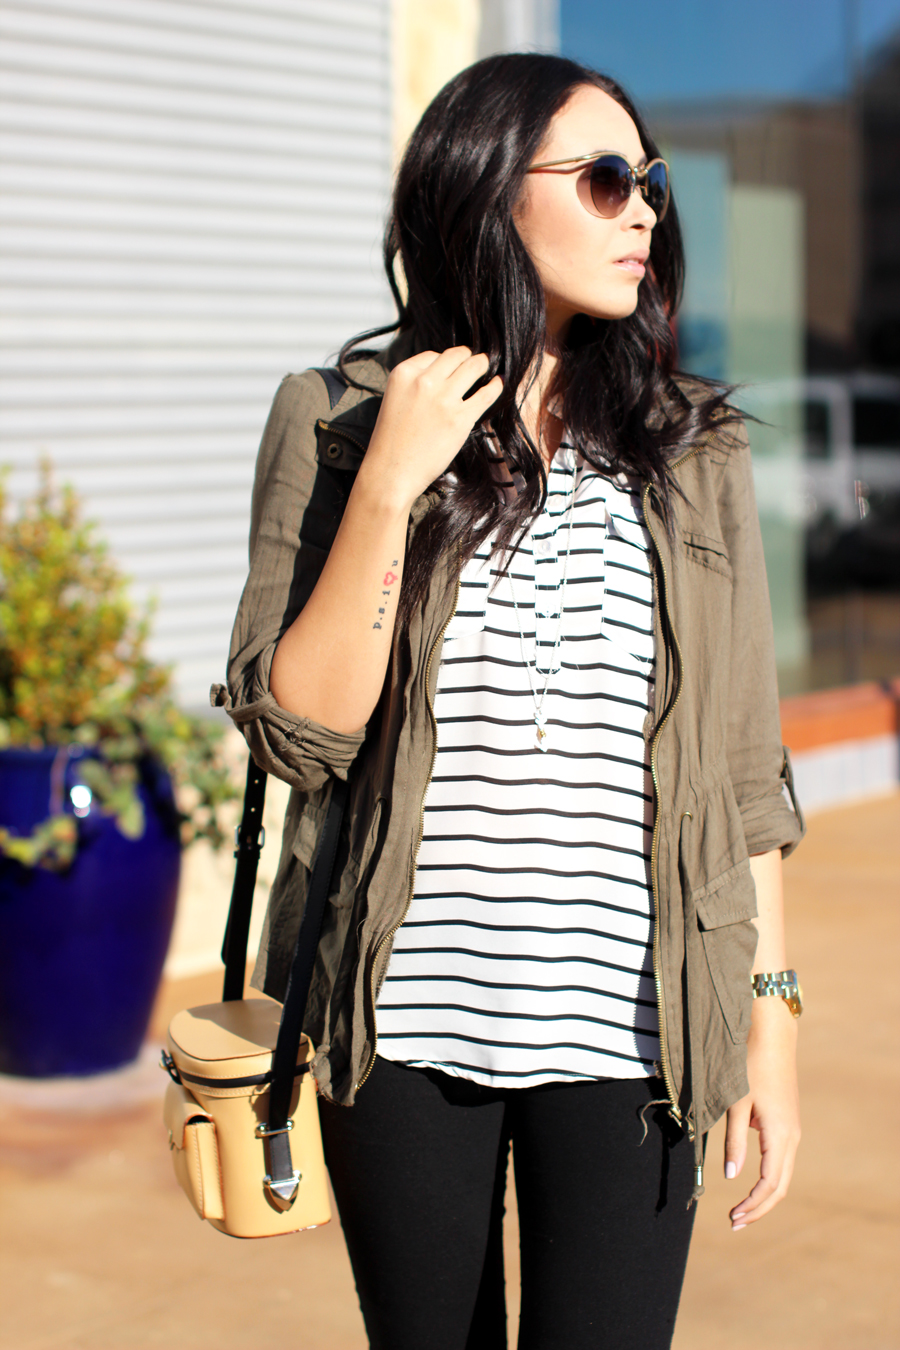 FTT-CARGO-JACKET-SHOPPING-HILL-COUNTRY-GALLERIA-SKINNY-JEANS-STRIPES-3